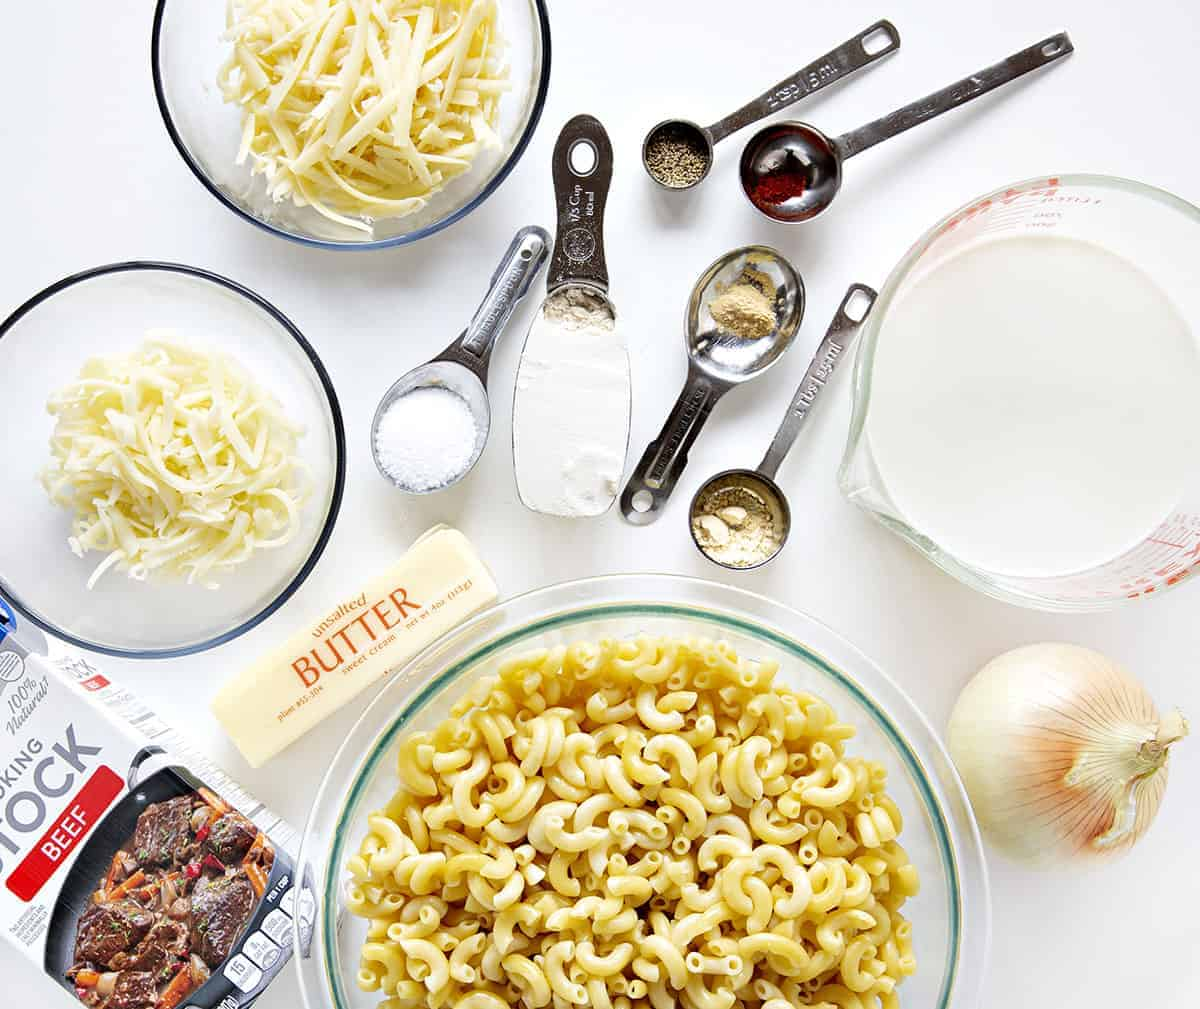 Ingredients for French Onion Chicken Macaroni and Cheese